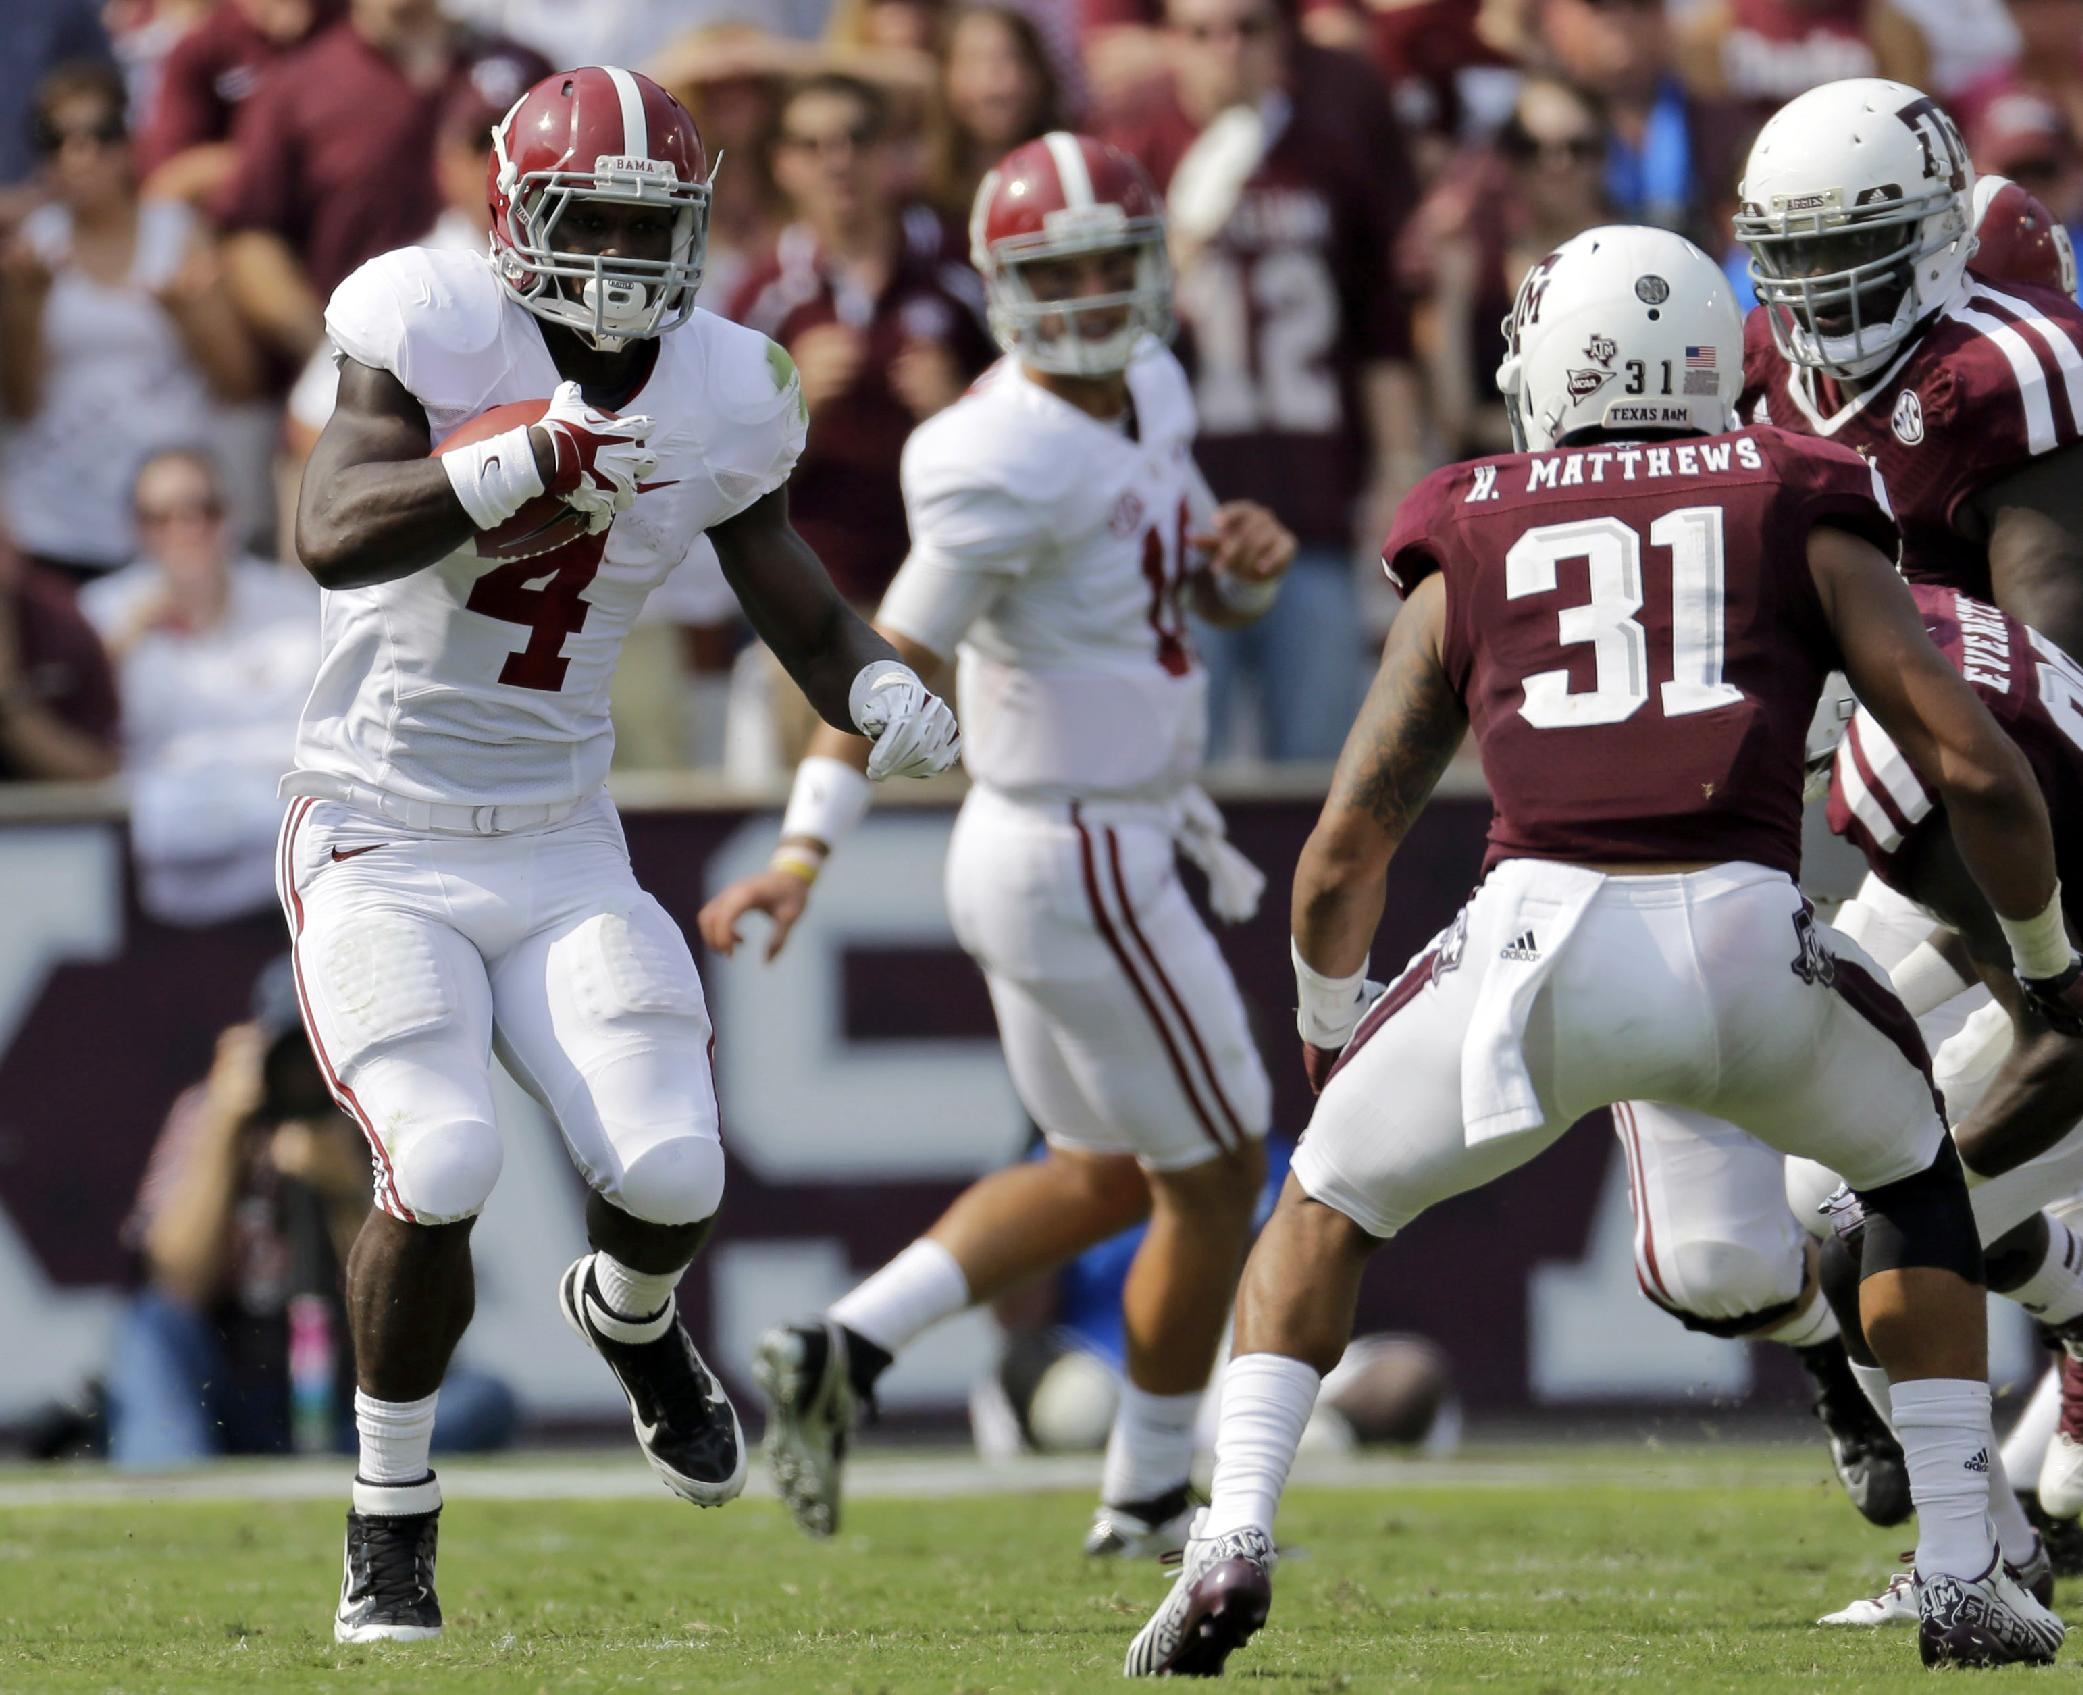 In this Sept. 14, 2013, file photo, Alabama running back T.J. Yeldon (4) rushes for a gain against Texas A&M during the second quarter of an NCAA college football game in College Station, Texas.  While Yeldon has had nifty runs and decent numbers, the top-ranked Crimson Tide's ground game ranks last in the Southeastern Conference and the offense is only one spot higher in total yards